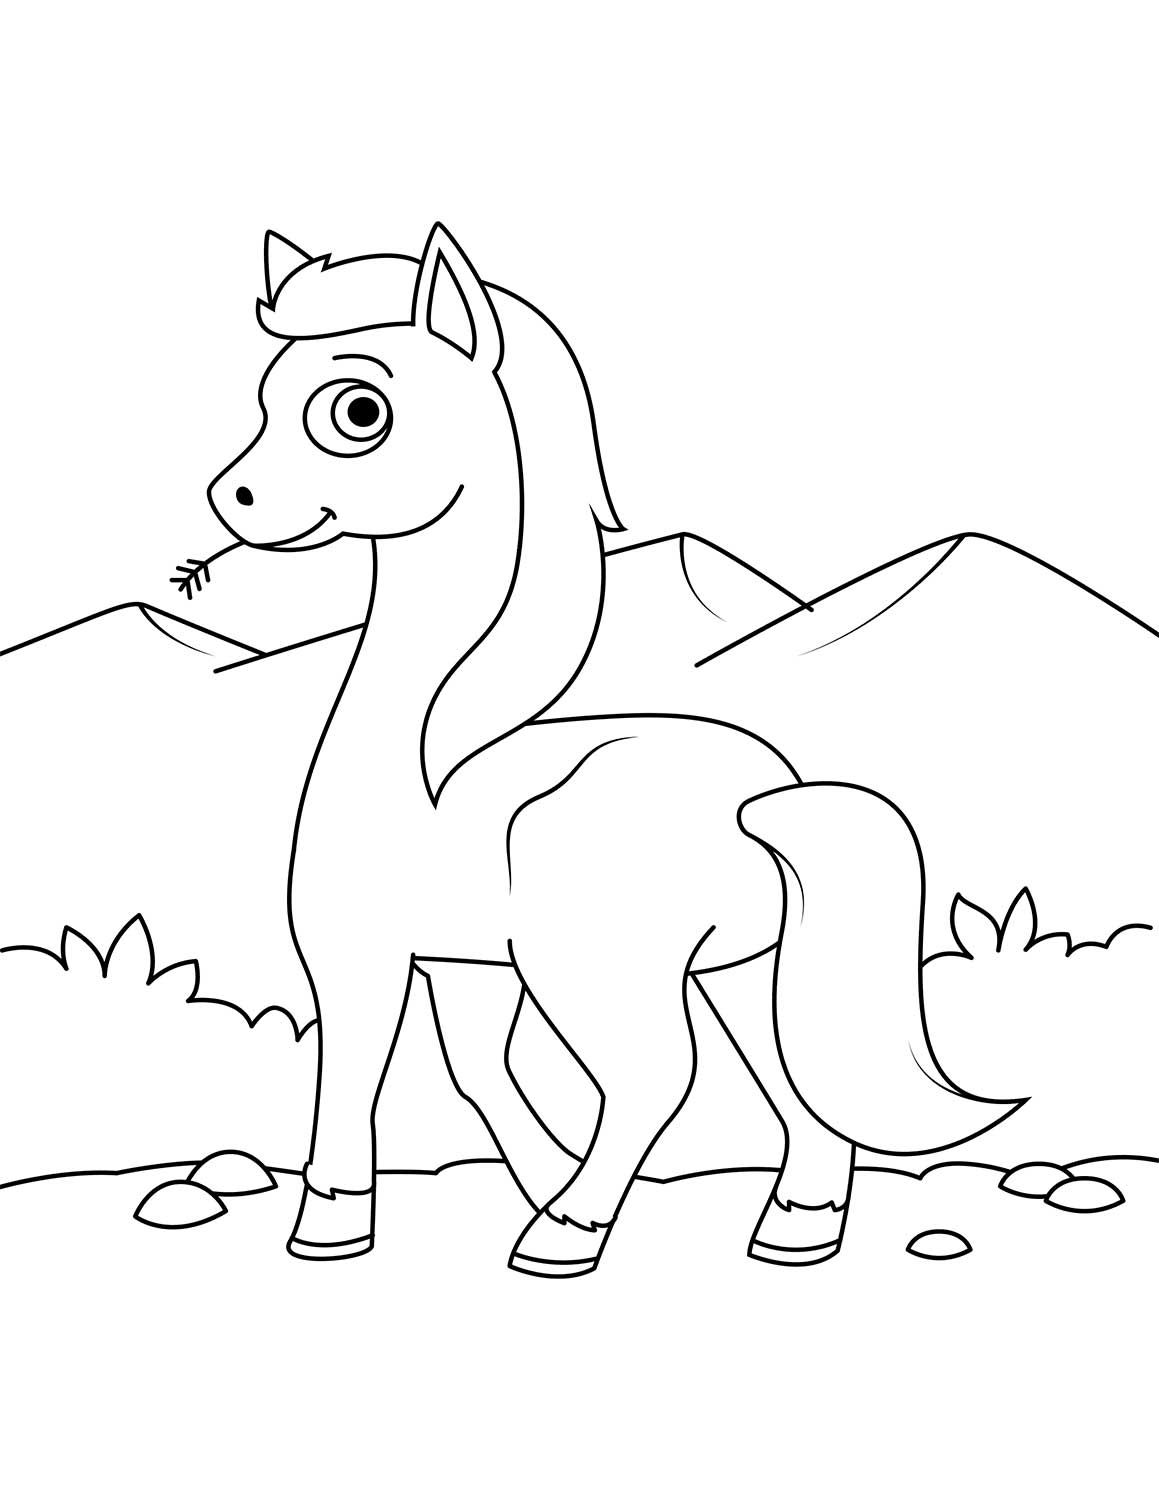 Cute Wild Horse Coloring Page Horse Coloring Pages Horse Coloring Books Animal Coloring Pages